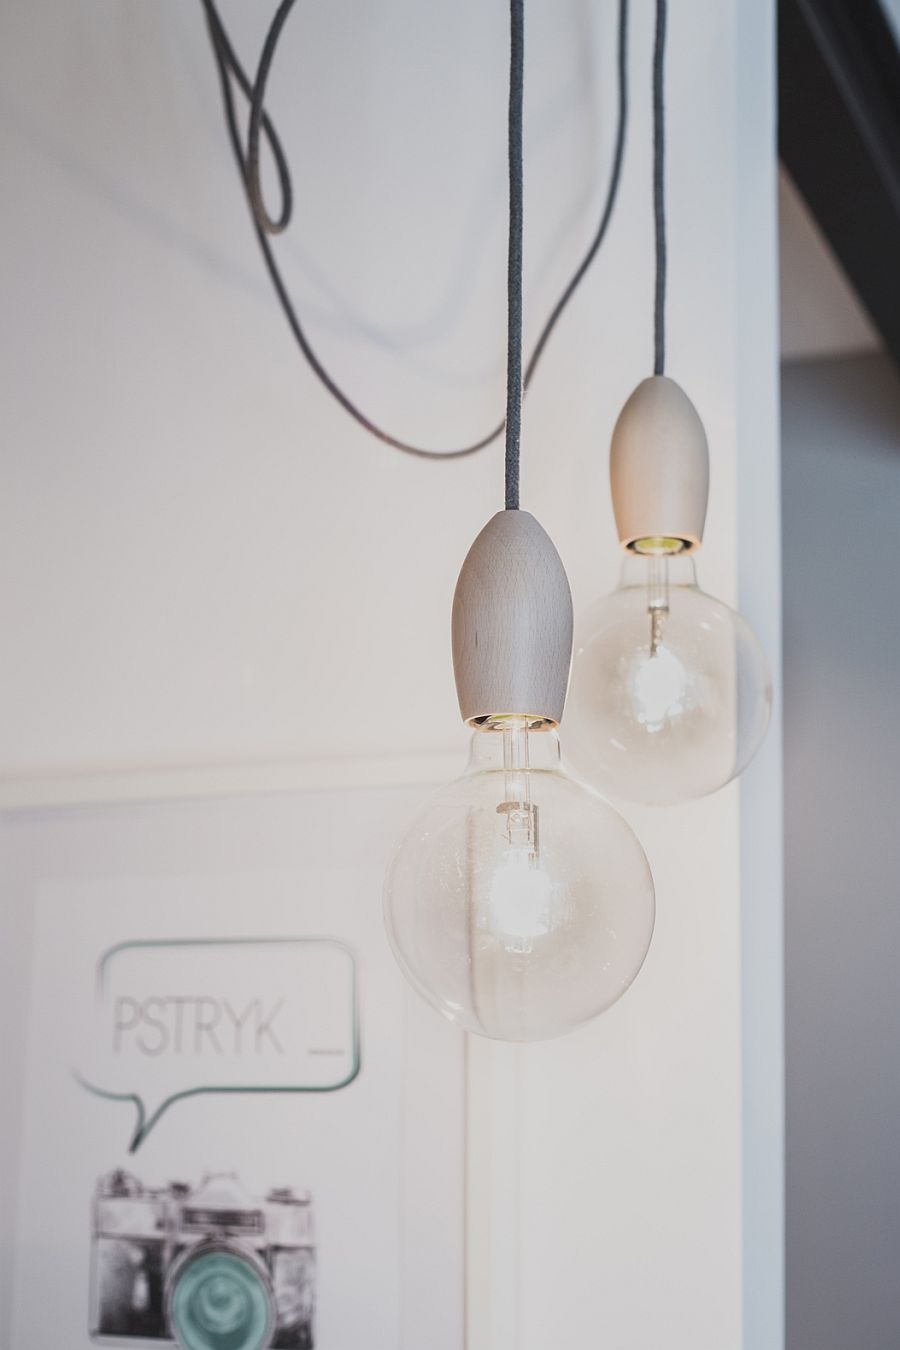 Edison bulbs with Scandinavian-inspired design offer lovely lighting